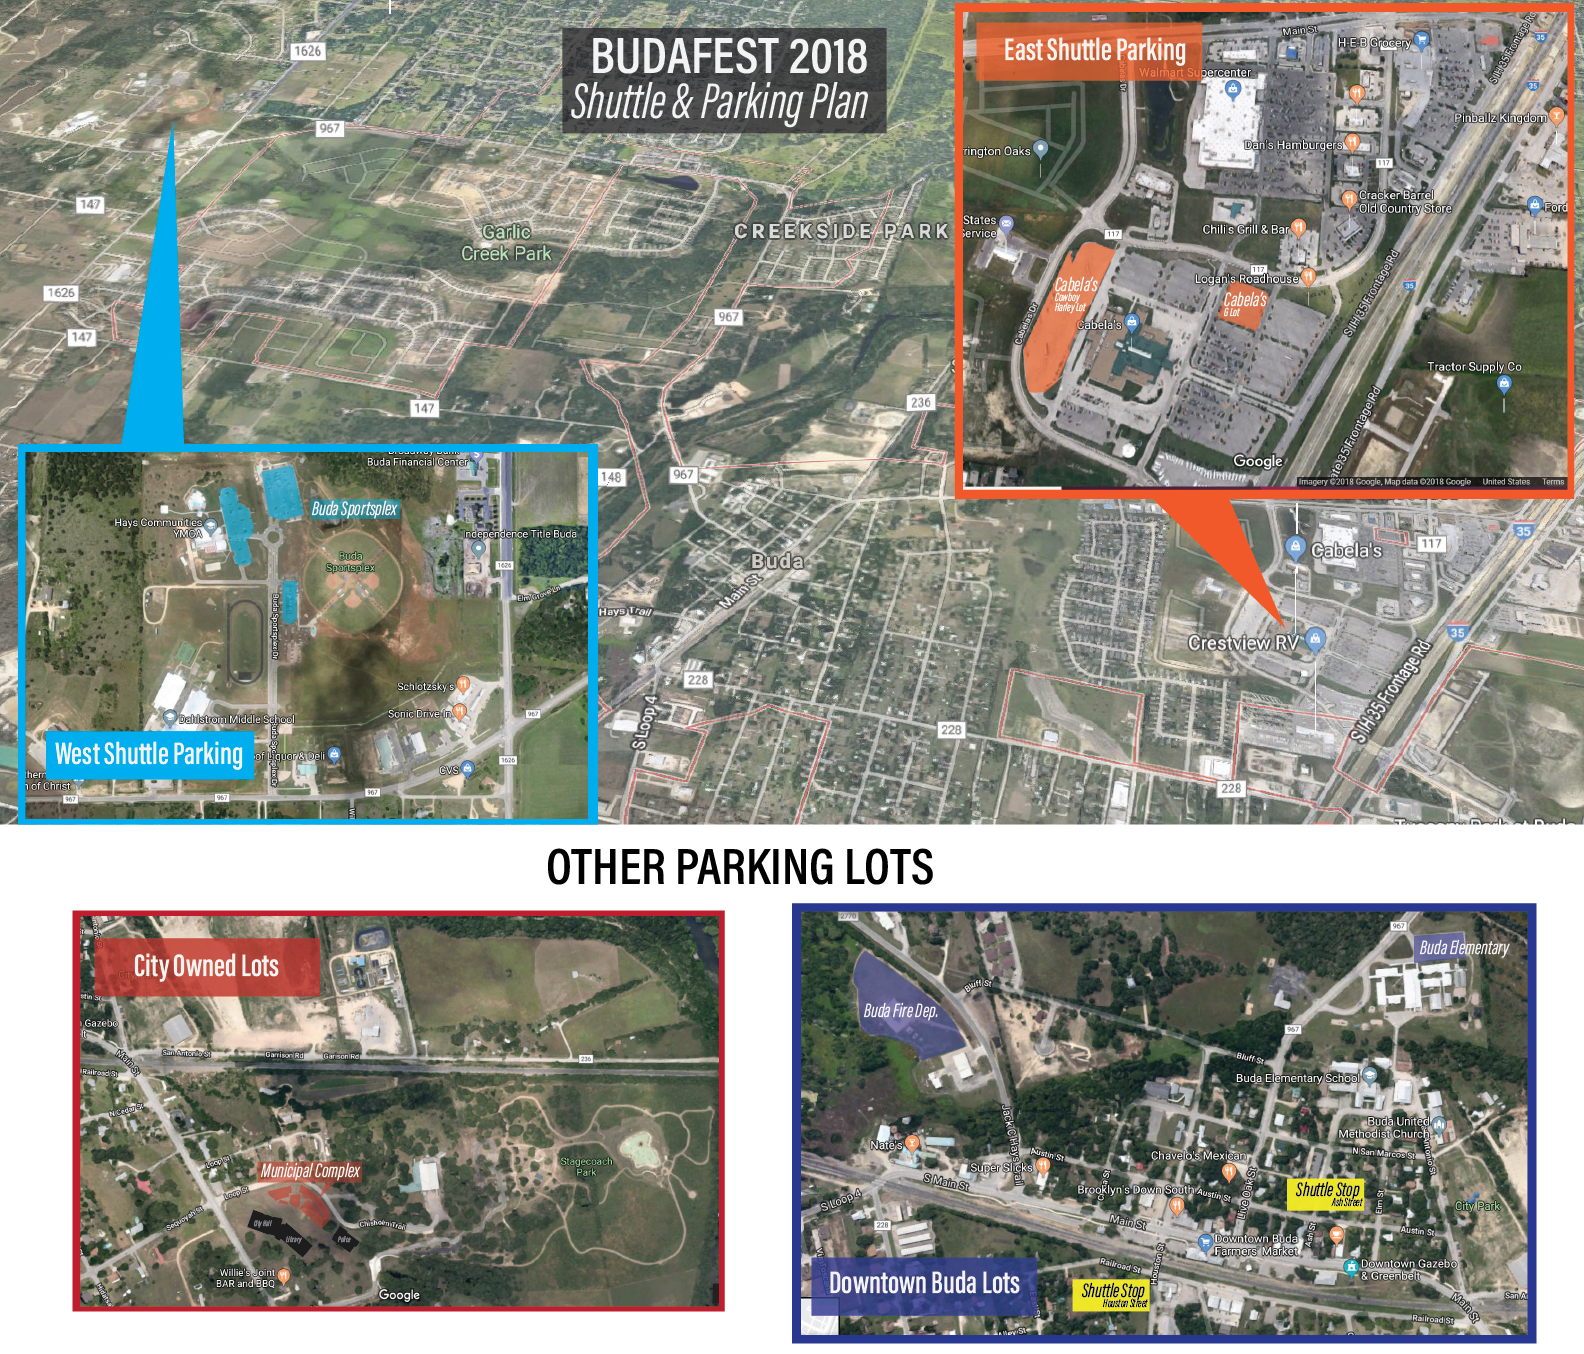 Shuttle parking plan Budafest 2018@2x.png